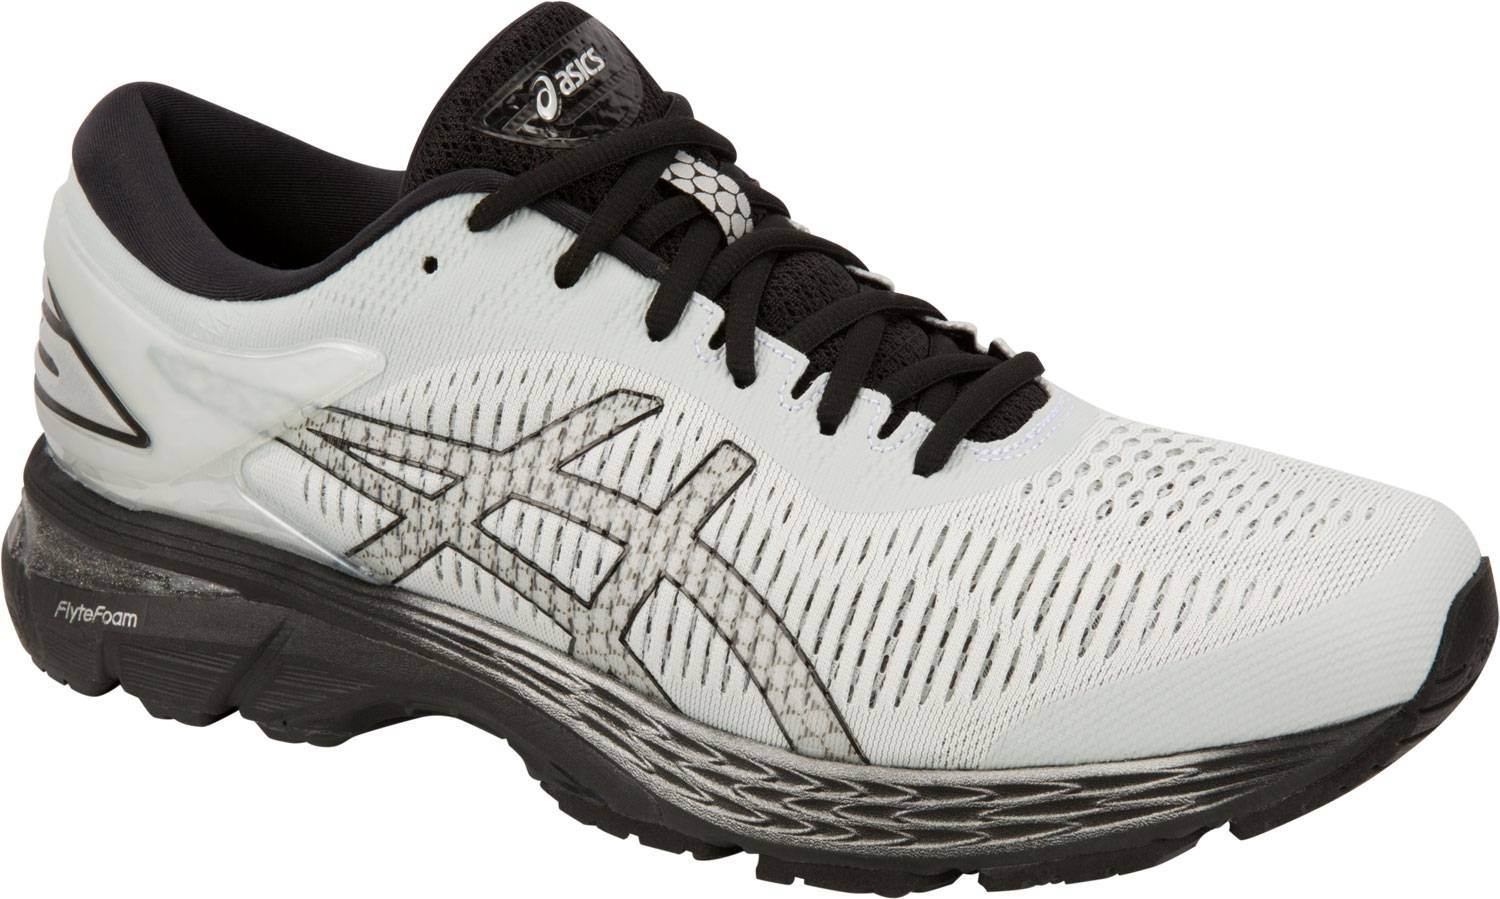 53767f9ff83 Asics Gel Kayano 25 Men s Running Shoes